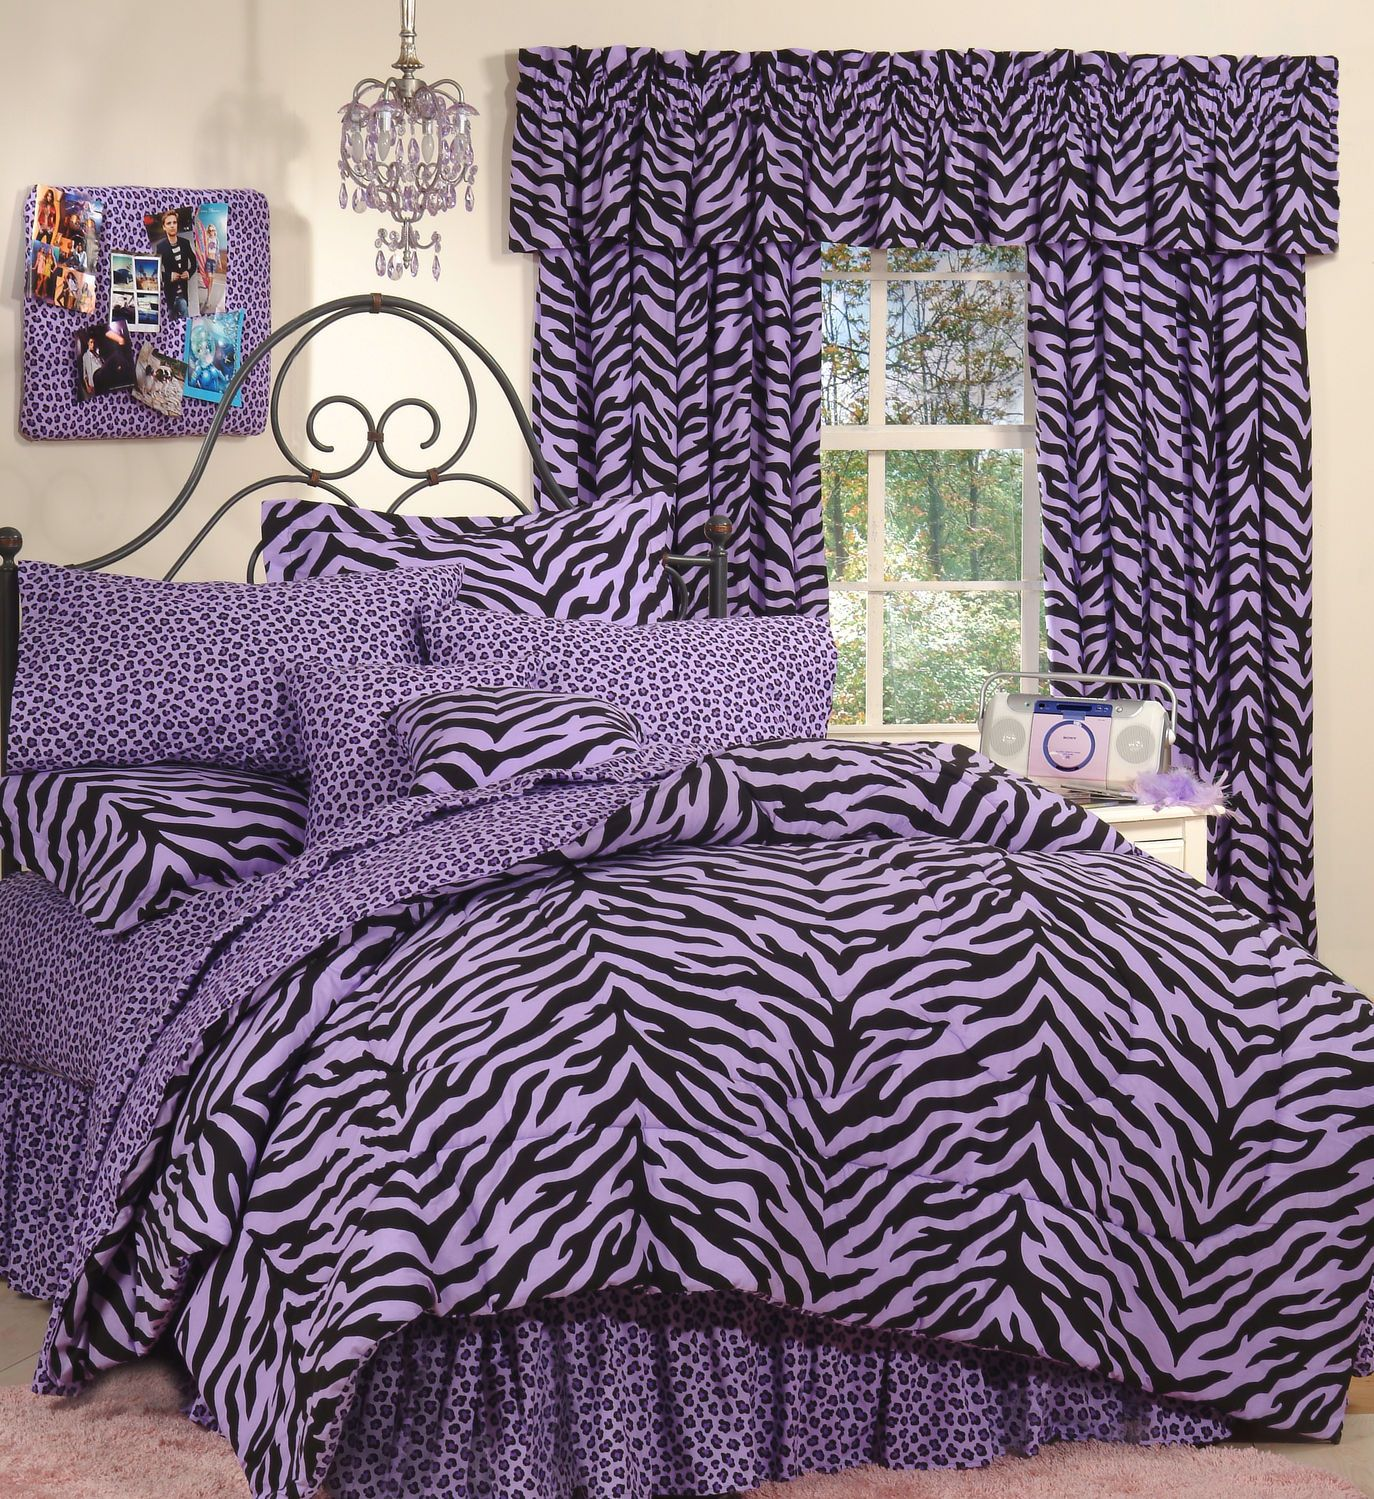 Animal print bedroom sets - Bedding Sets For Girls Print Purple Zebra Print Bed In A Bag